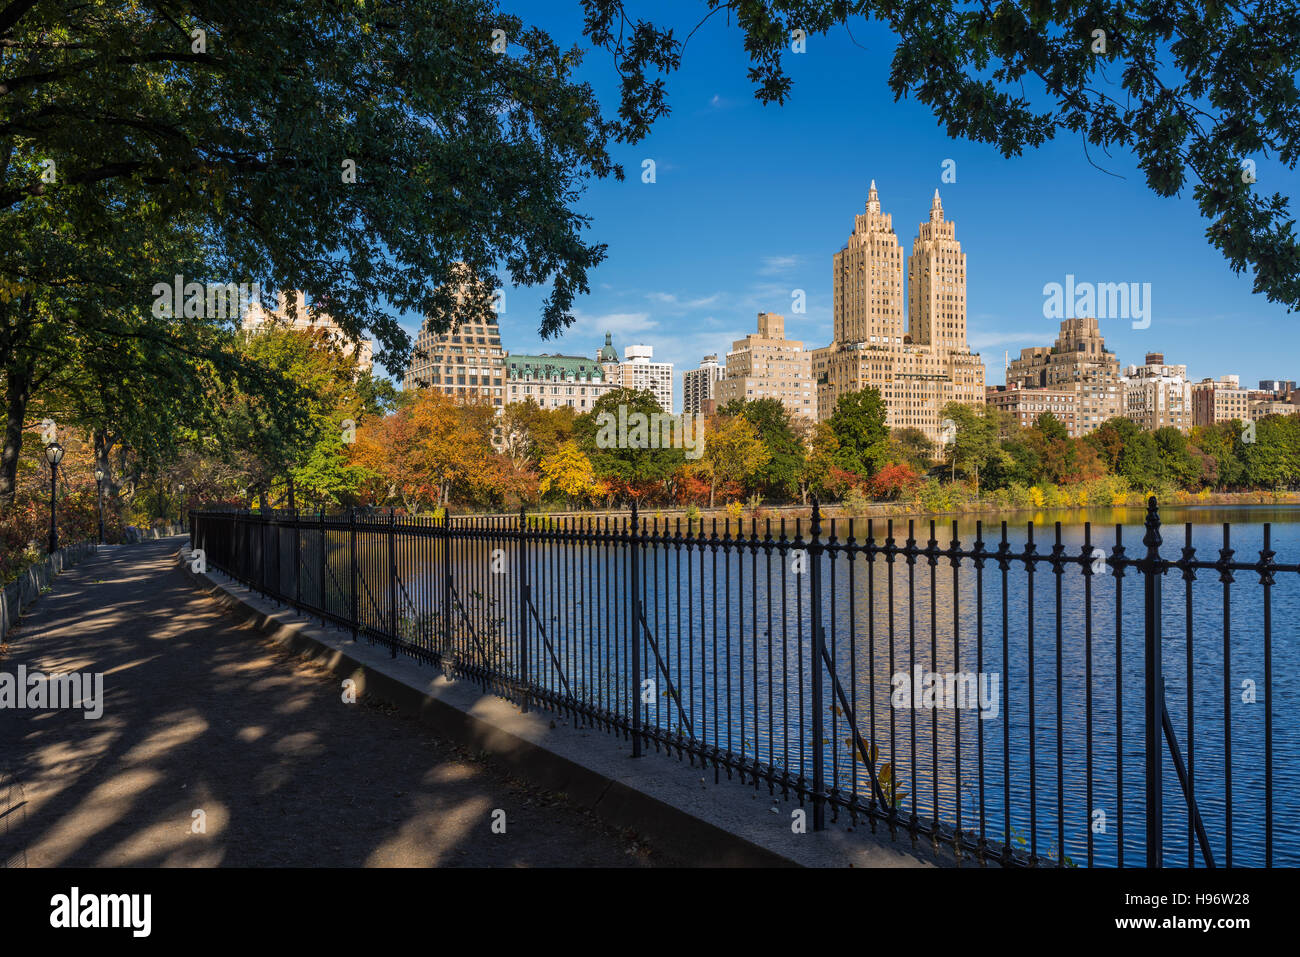 Upper West Side with colorful fall foliage across Jacqueline Kennedy Onassis Reservoir. Central Park West. New York - Stock Image